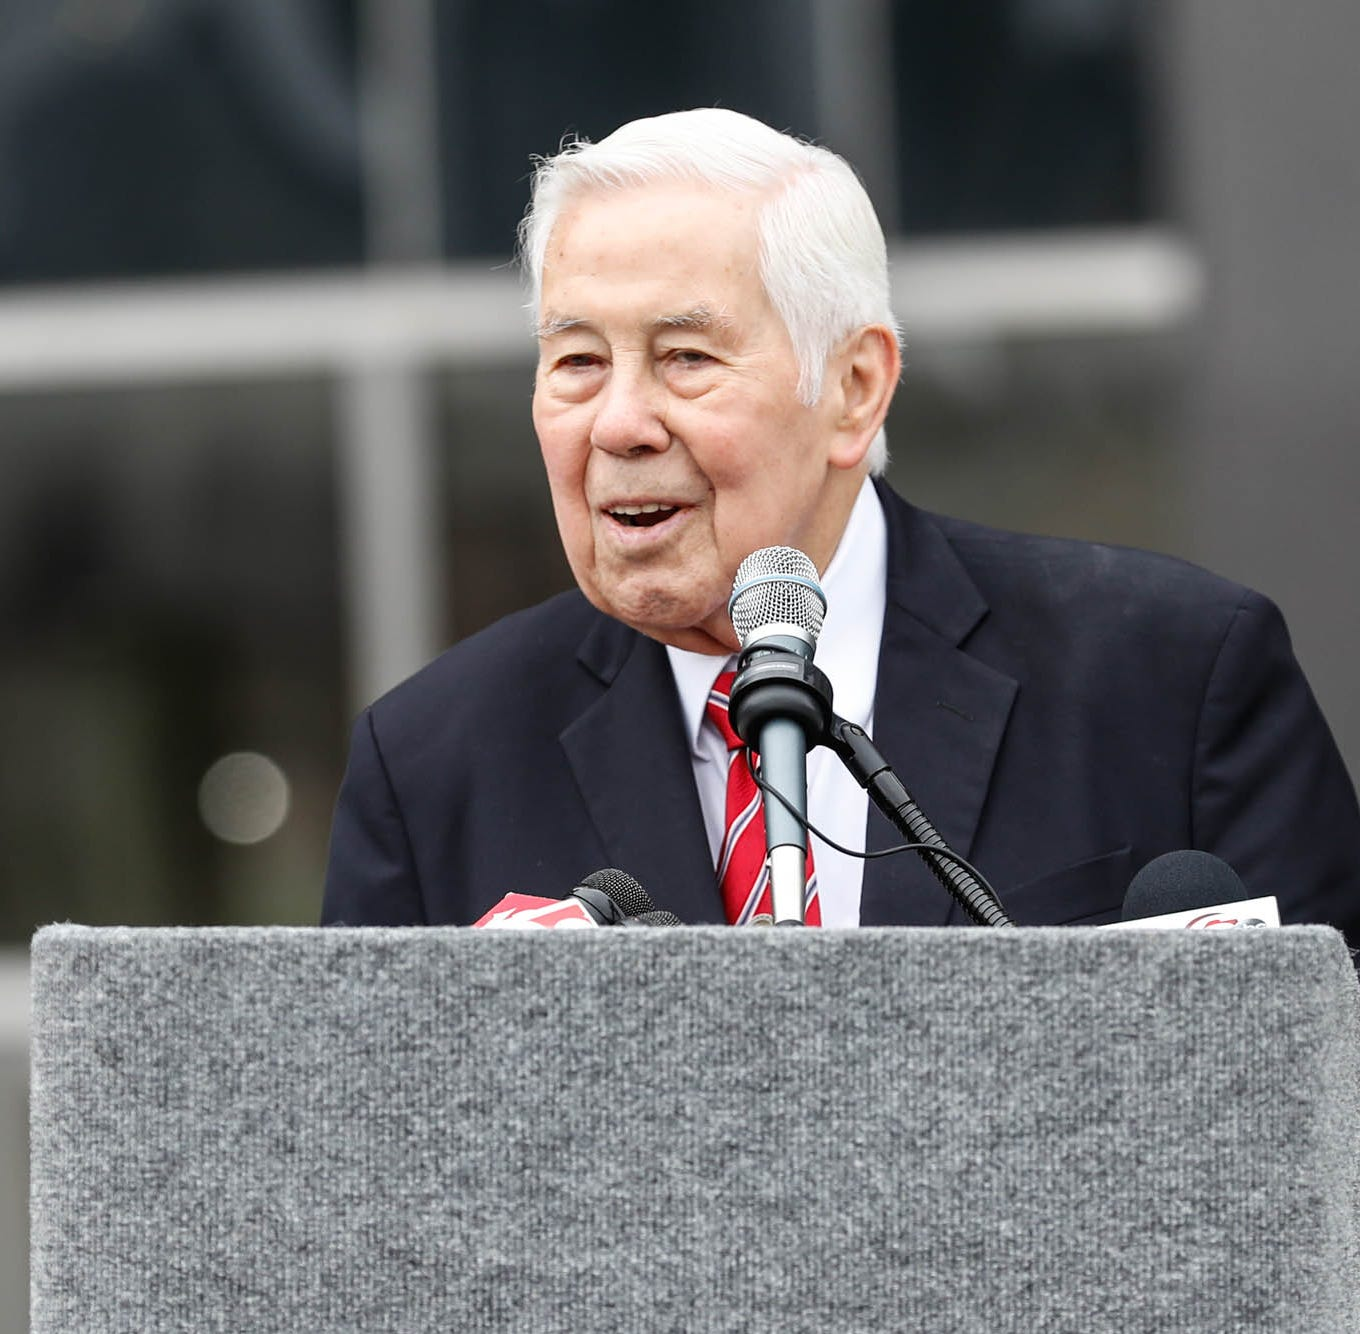 Nate LaMar: A Hoosier veteran's tribute to Sen. Richard Lugar the statesman